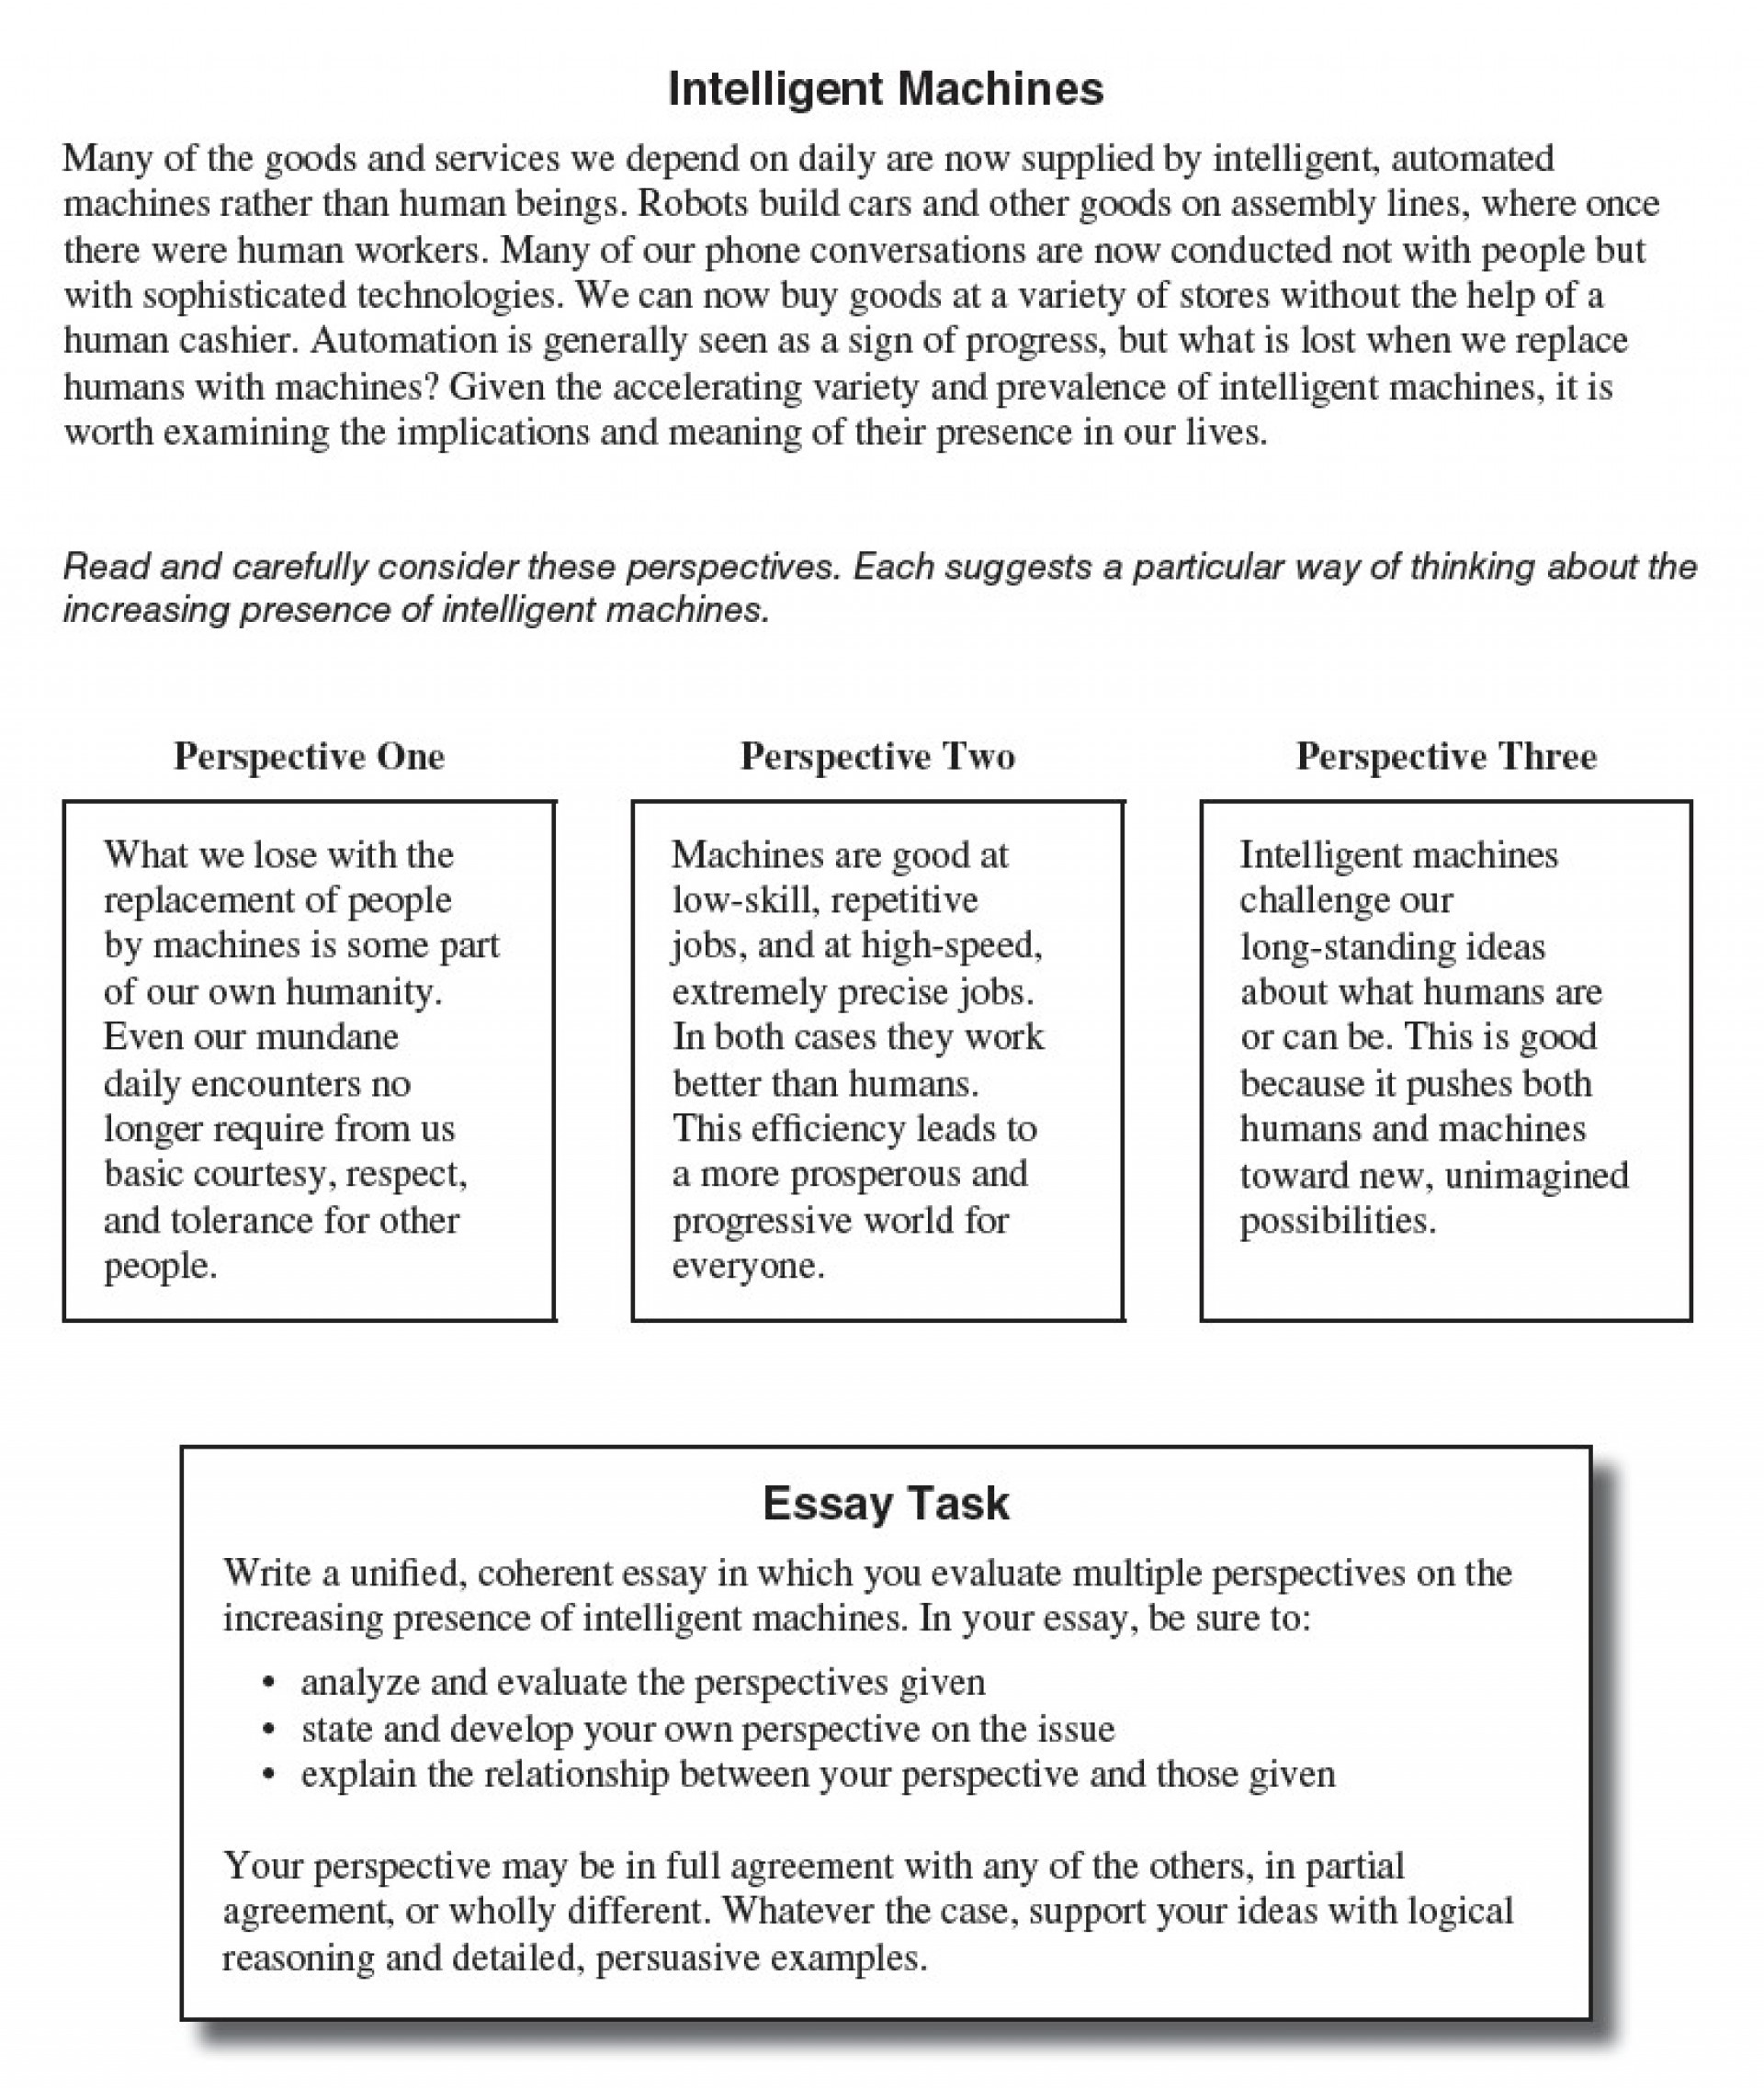 005 Act Prompt How To Write An Essay Dreaded 2018 Template 1920